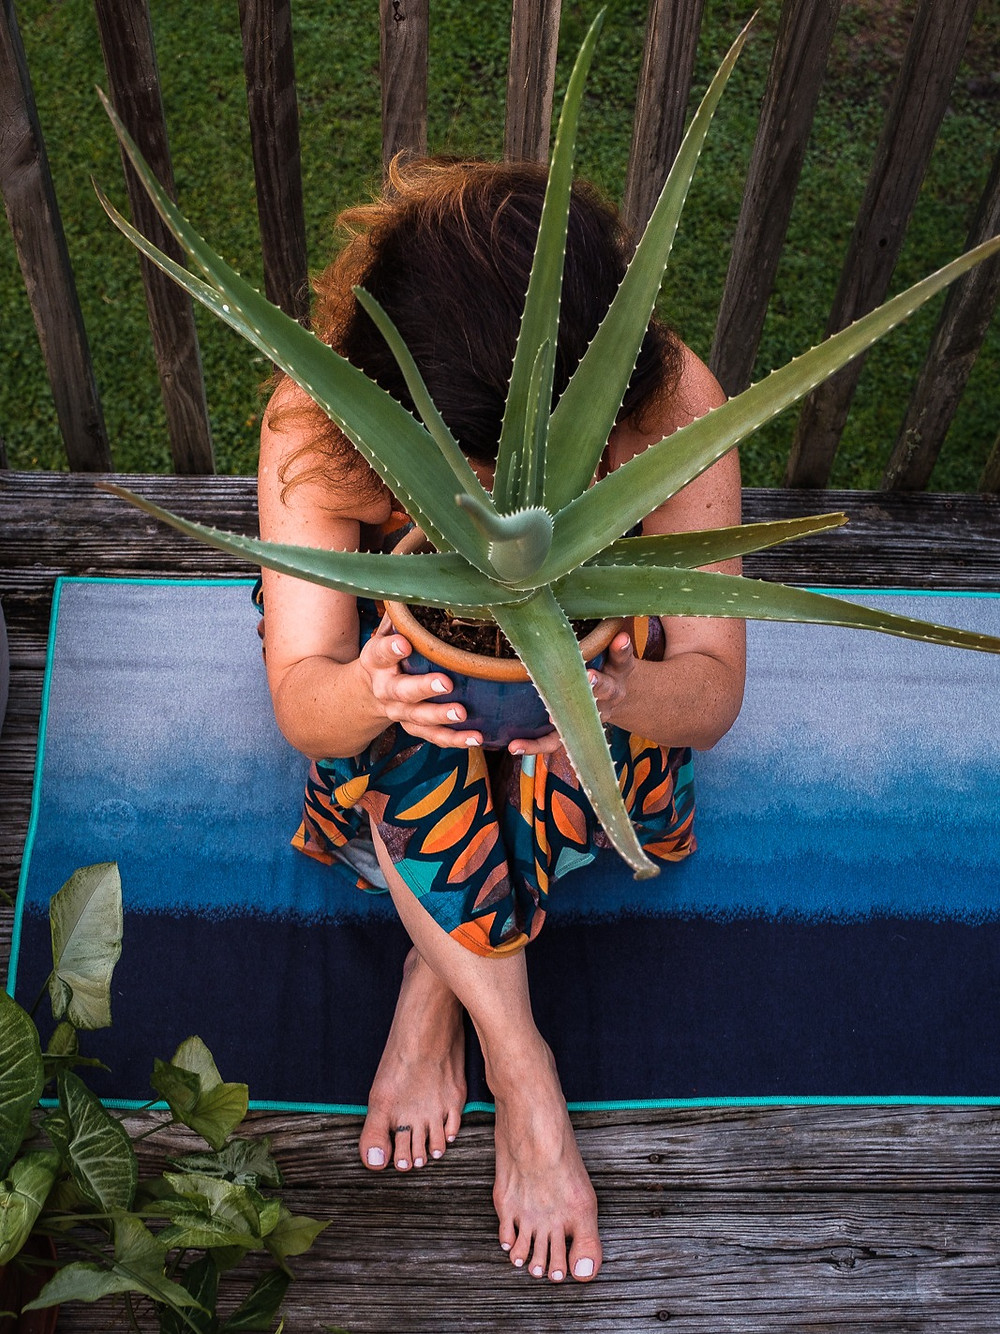 Woman holding a potted aloe plant as part of a health and wellness self care DIY manicure and pedicure for personal brand photography.